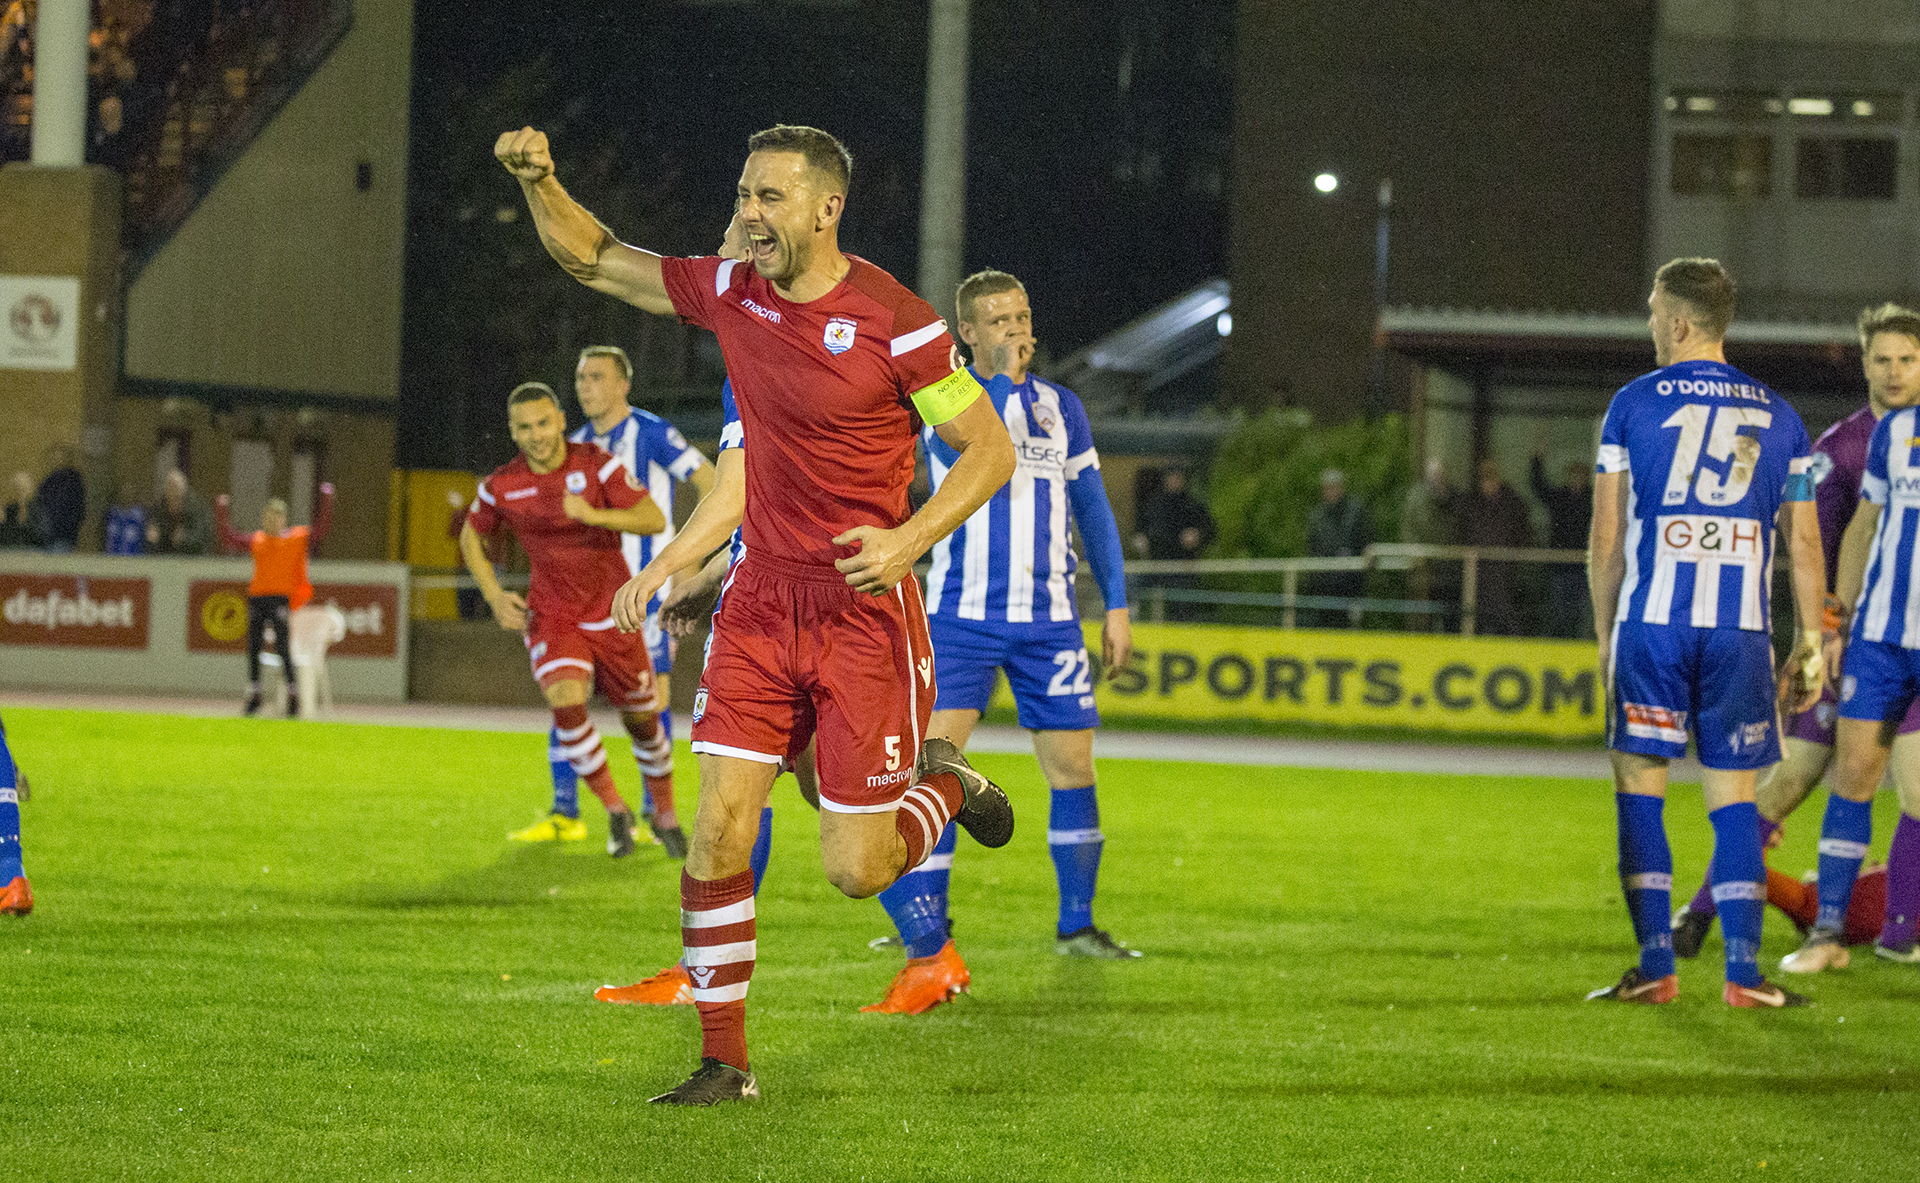 George Horan celebrates his goal against Coleraine in the 2018/19 Irn Bru Cup